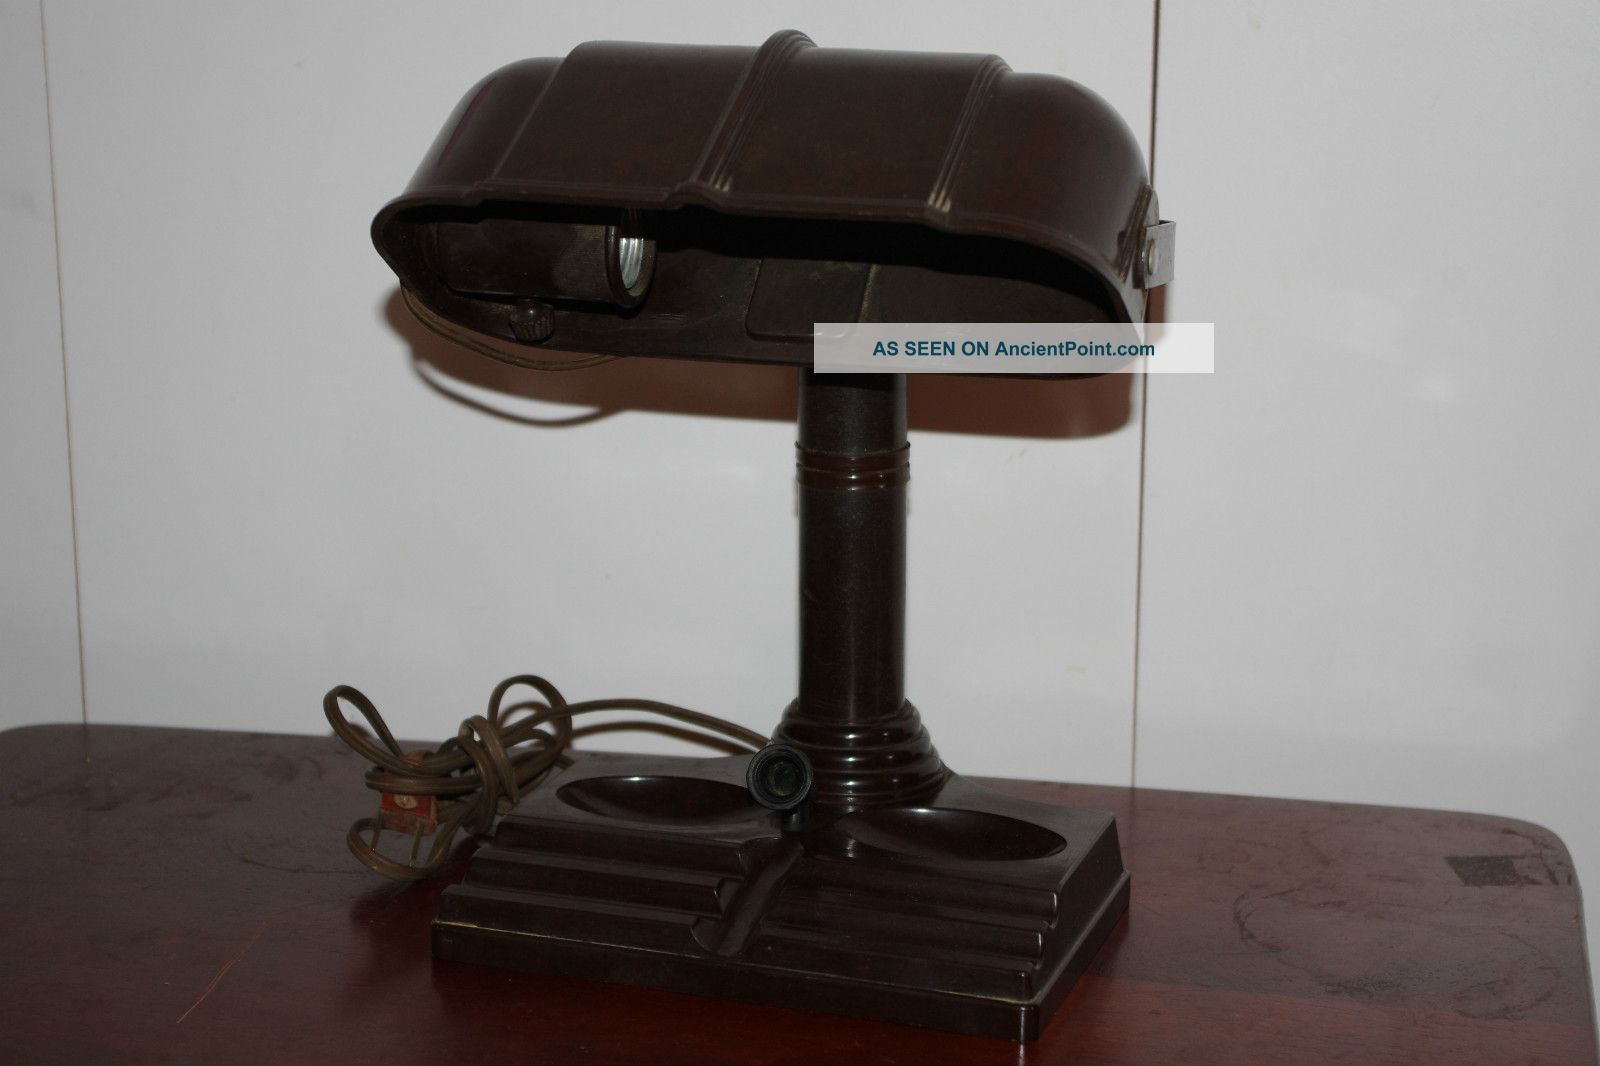 Bakelite Desk Lamp Stand - Parts 20th Century photo